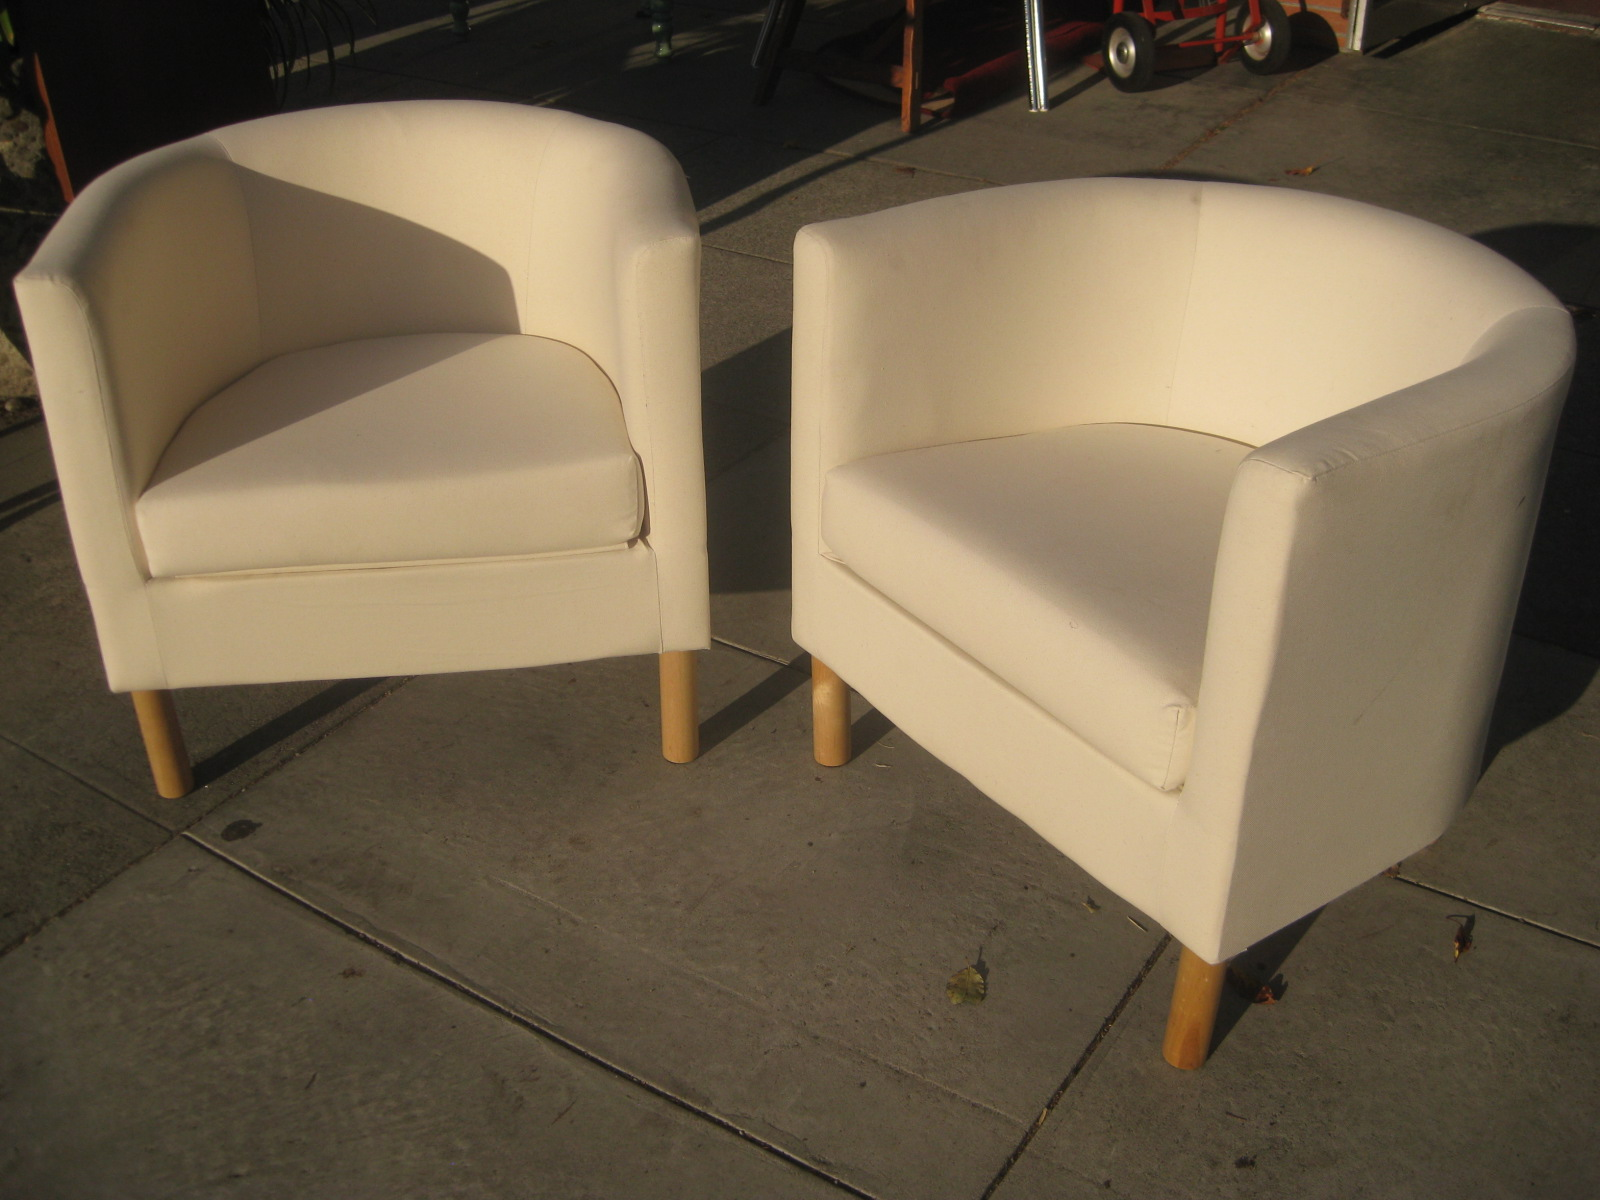 White Bucket Chair Cover Rental Manila Uhuru Furniture And Collectibles Sold Chairs 75